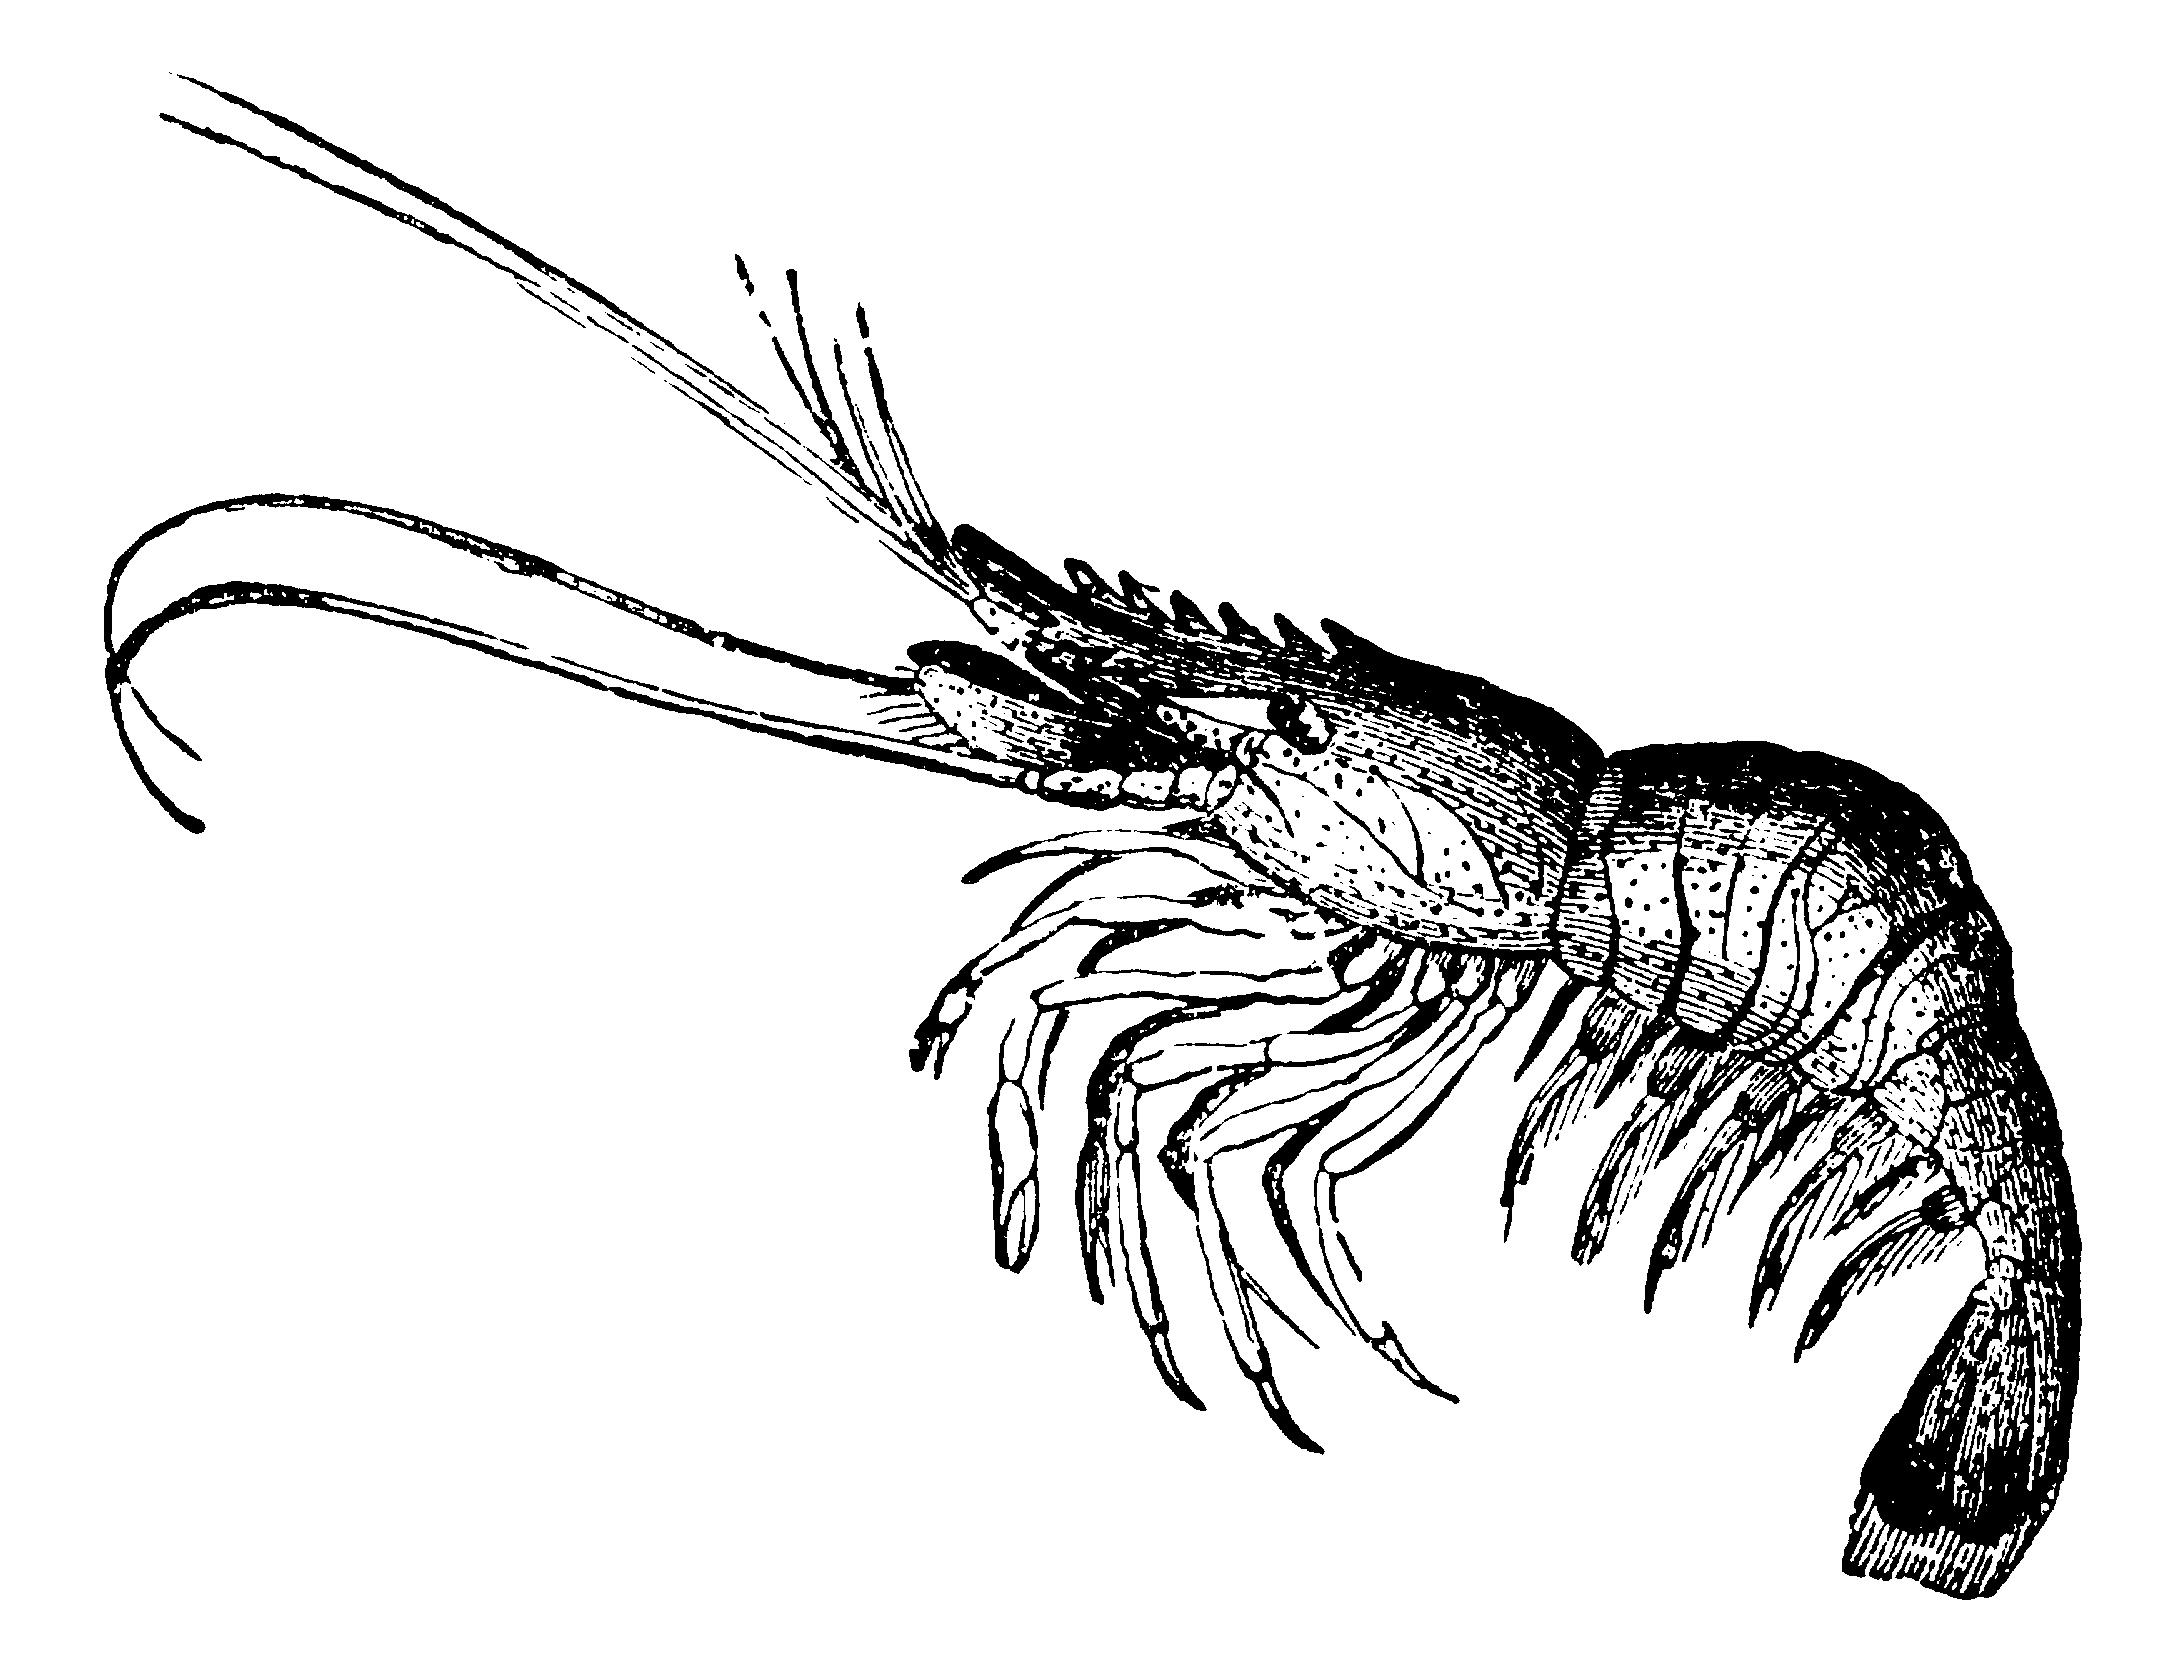 More Resources About Marine Arthropods